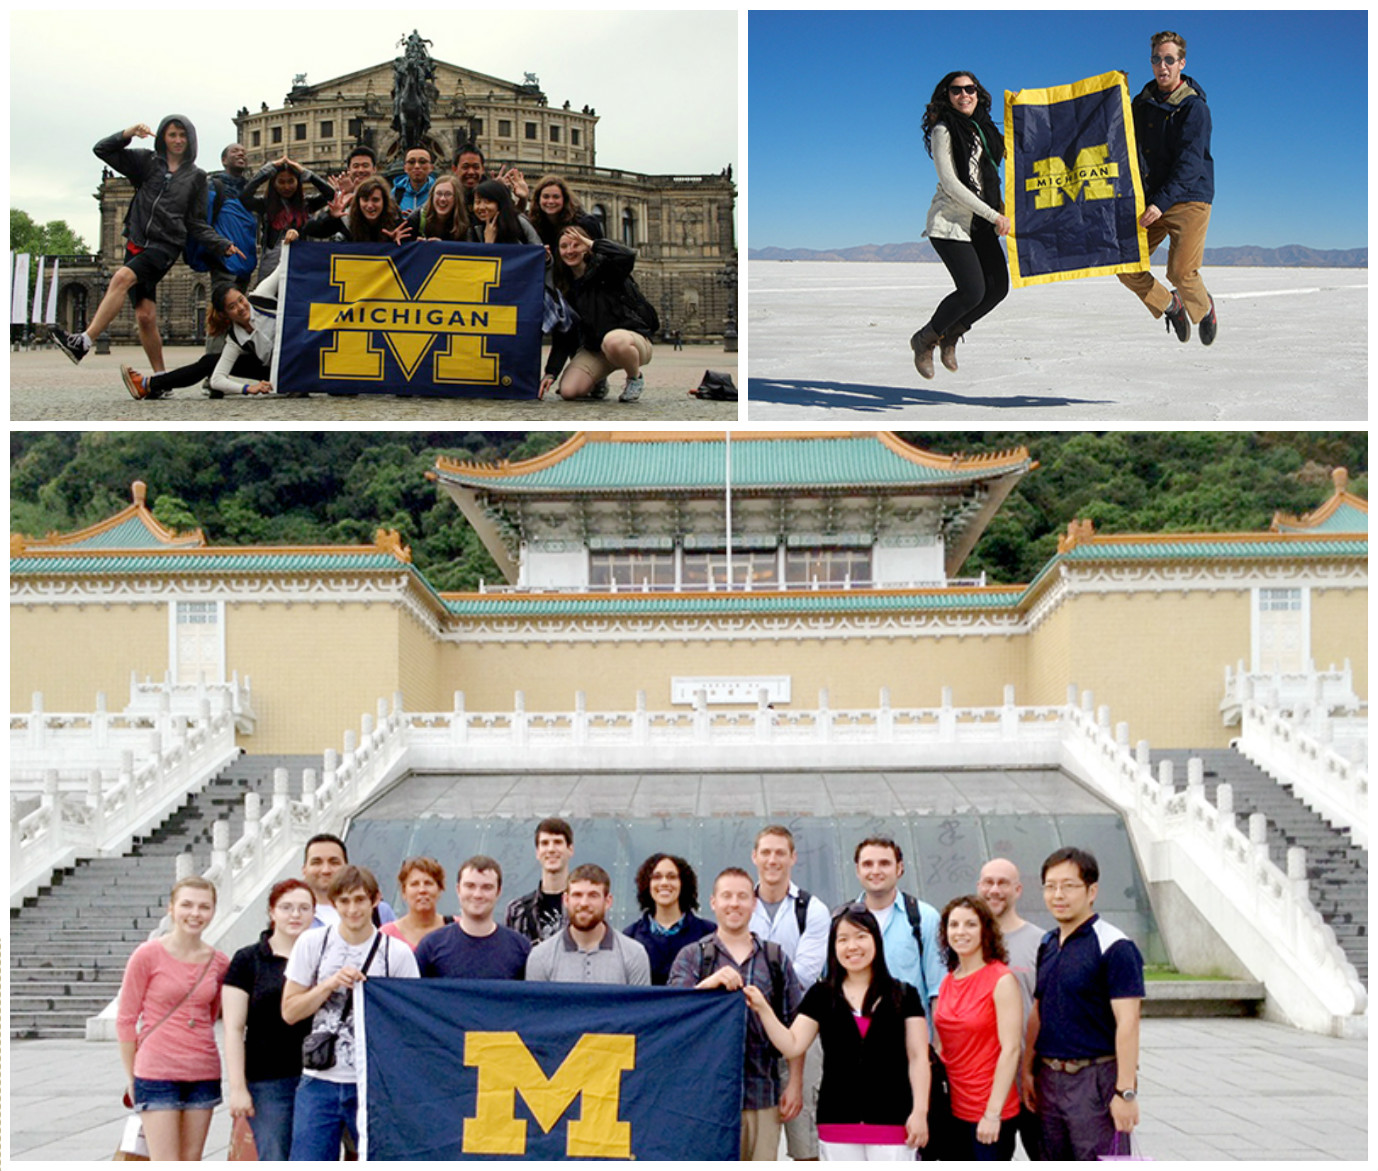 expanding the horizons by studying abroad